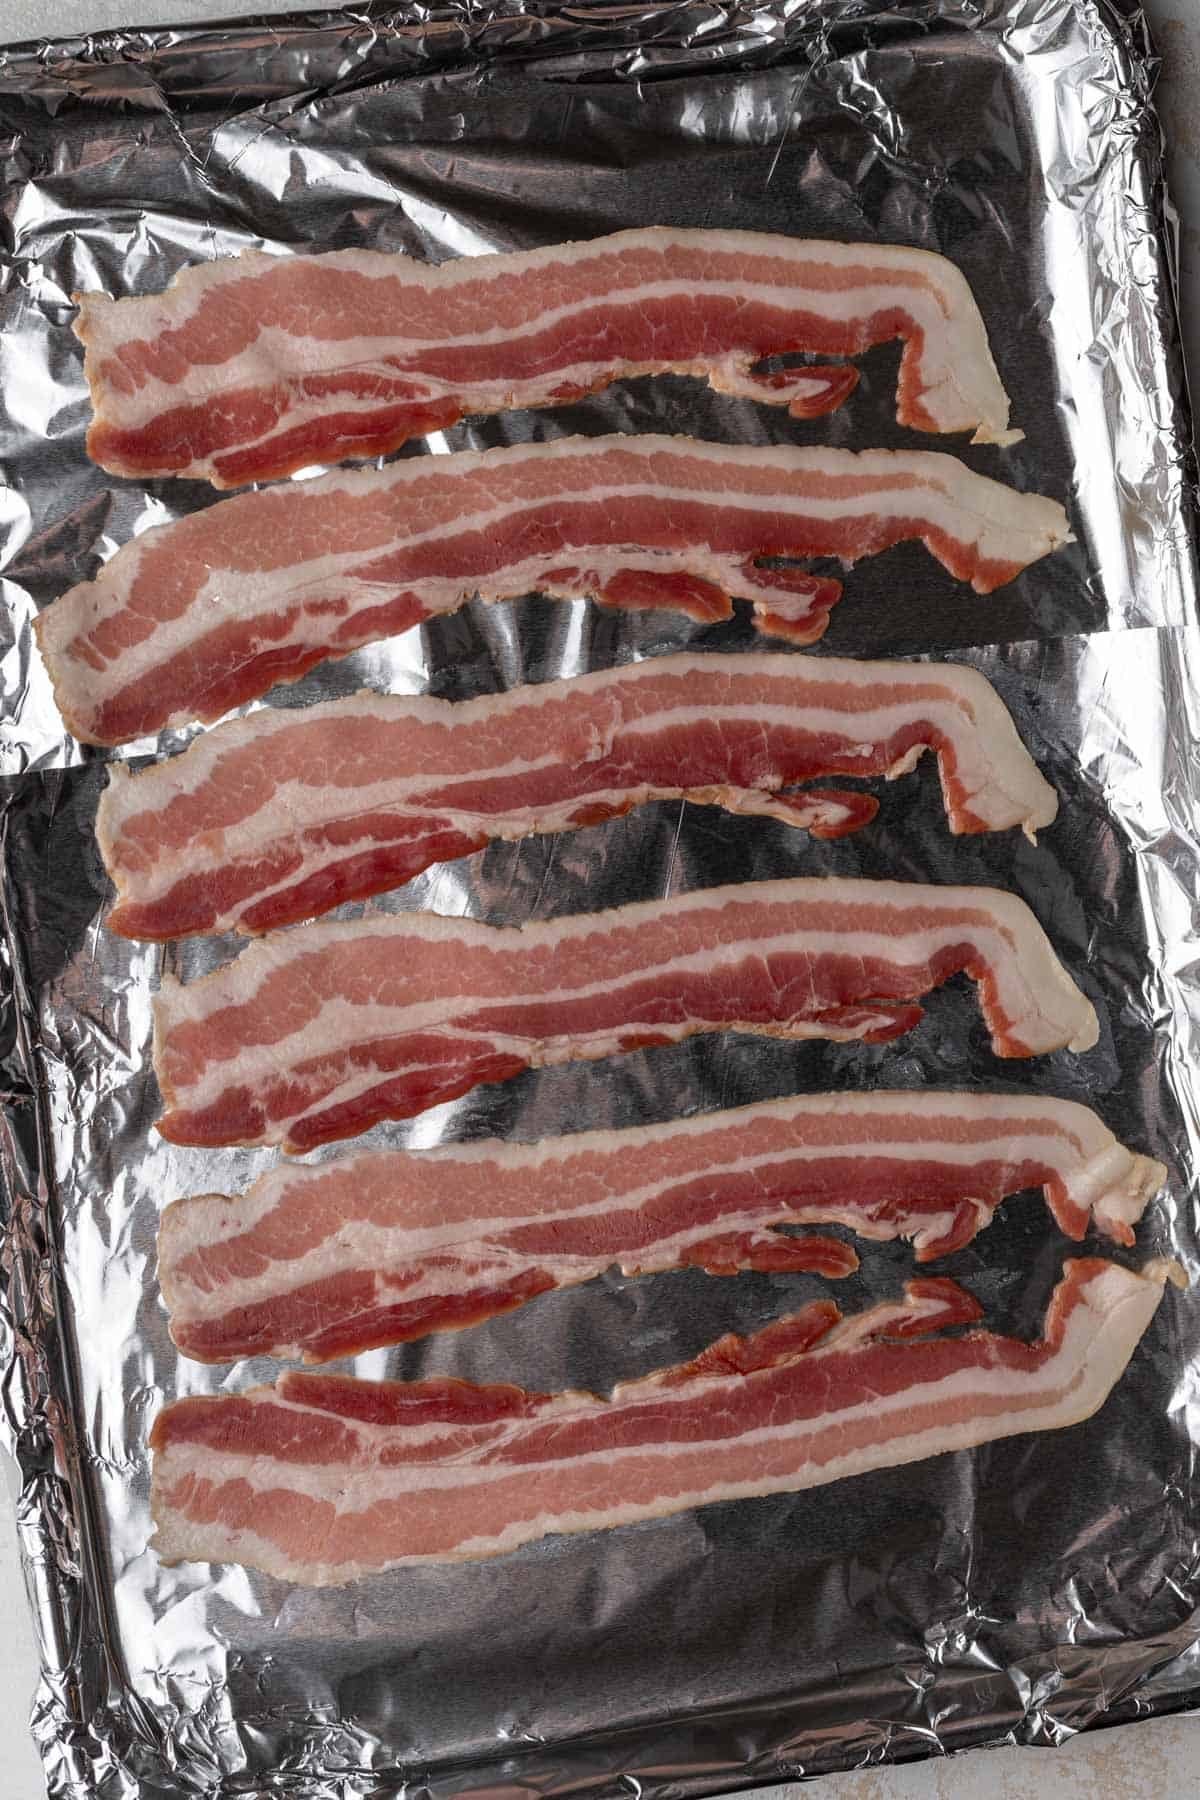 Bacon lined up on a sheet pan covered in foil.